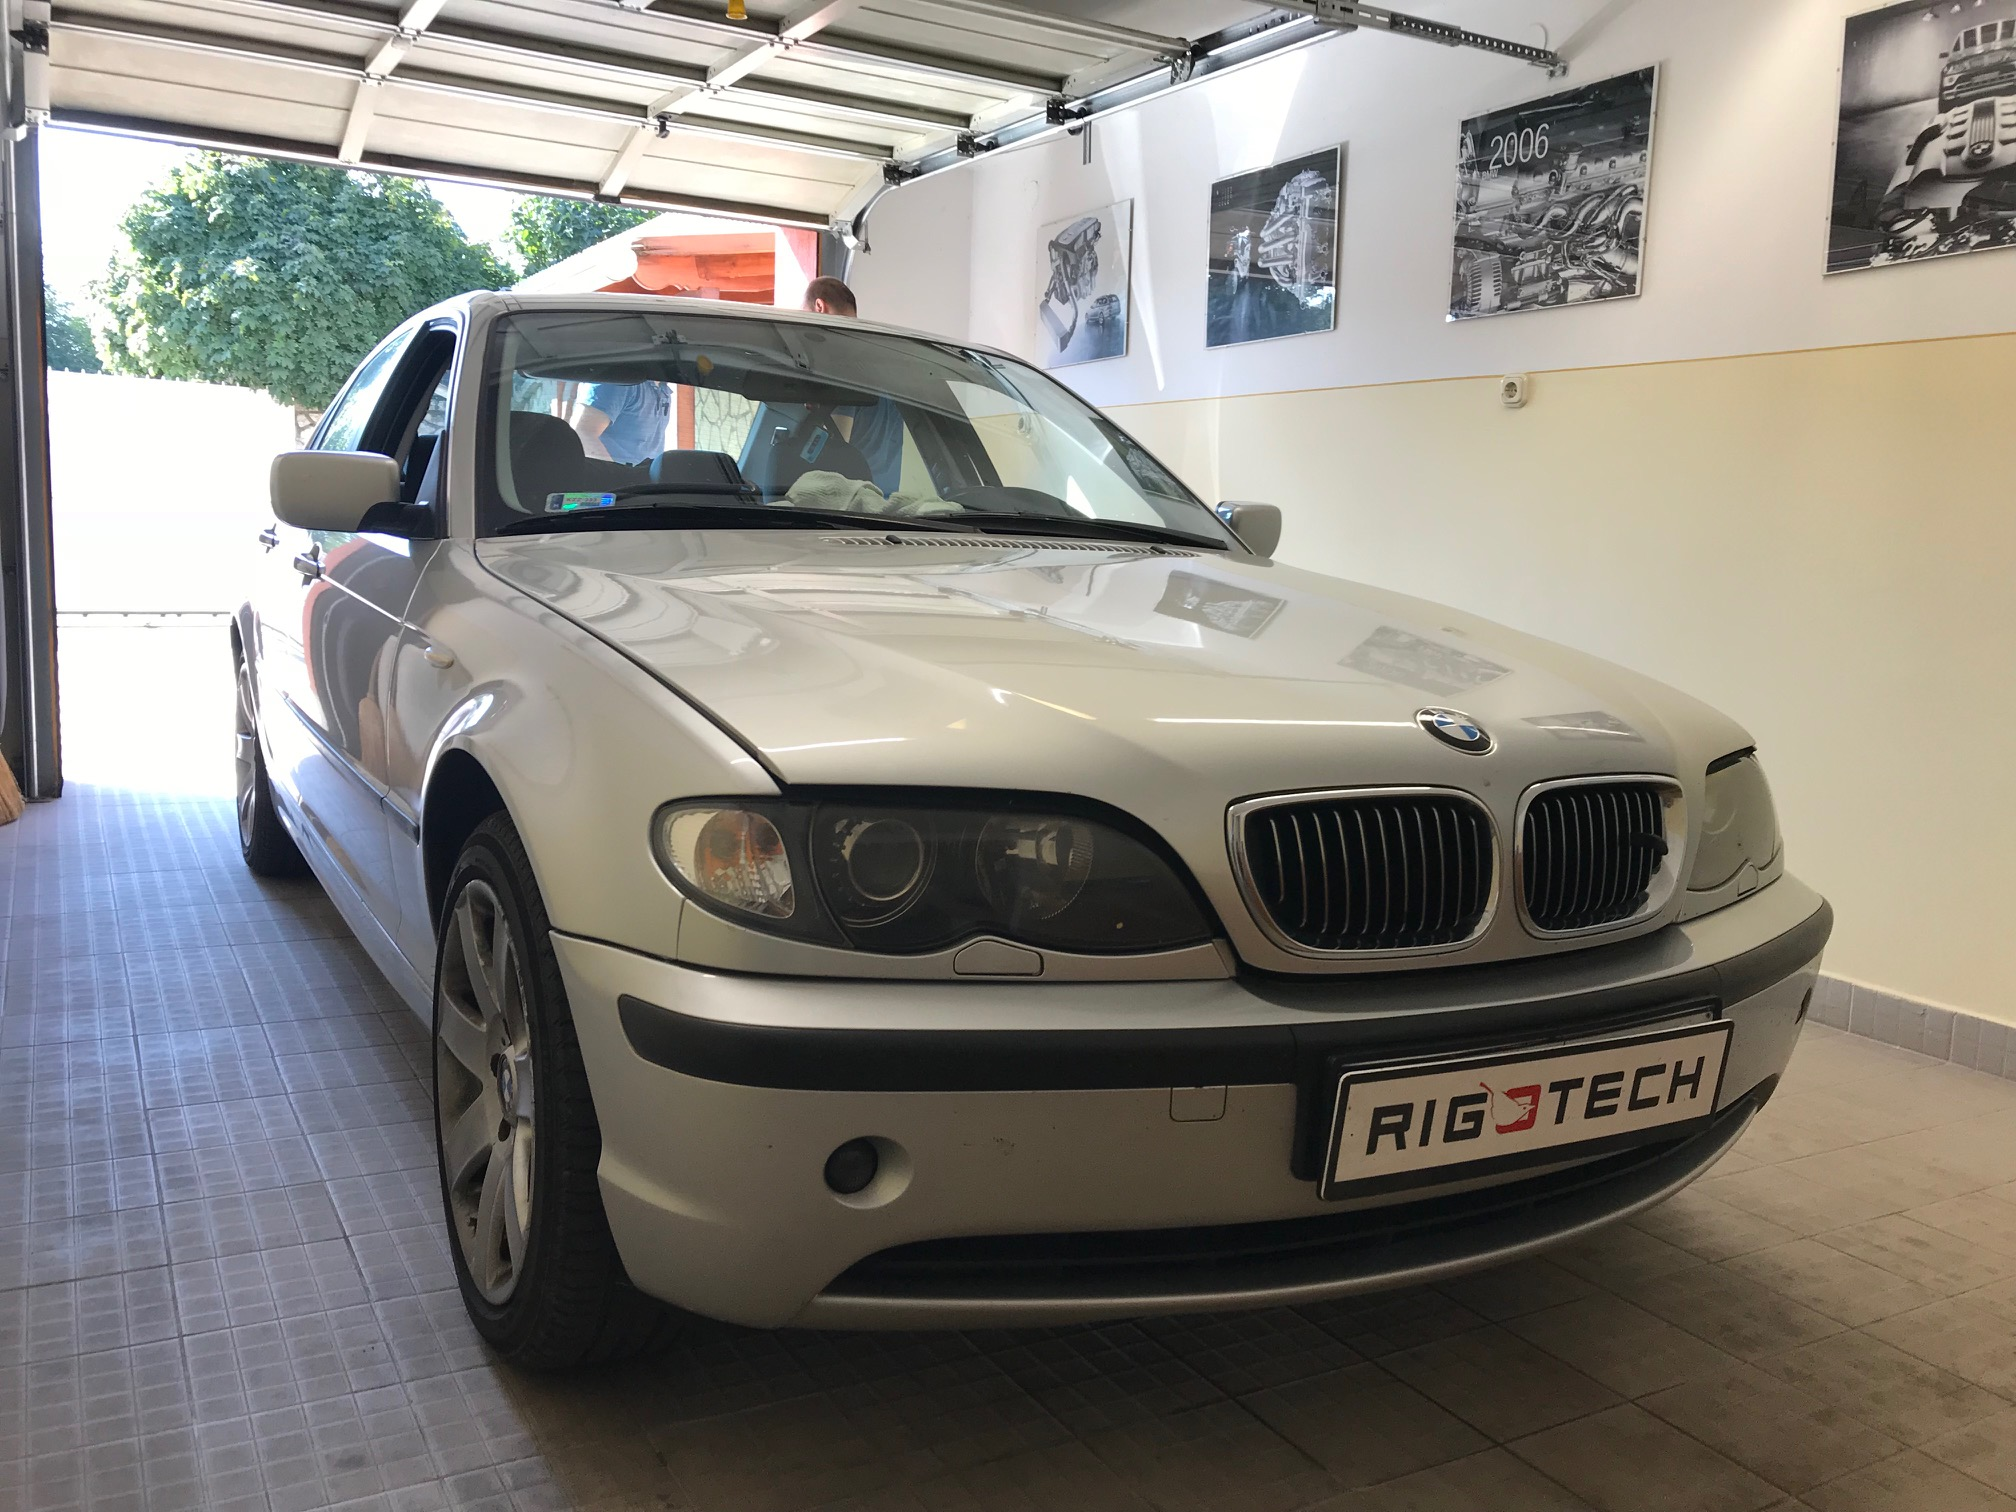 Bmw-330xd-204Le-chiptuning